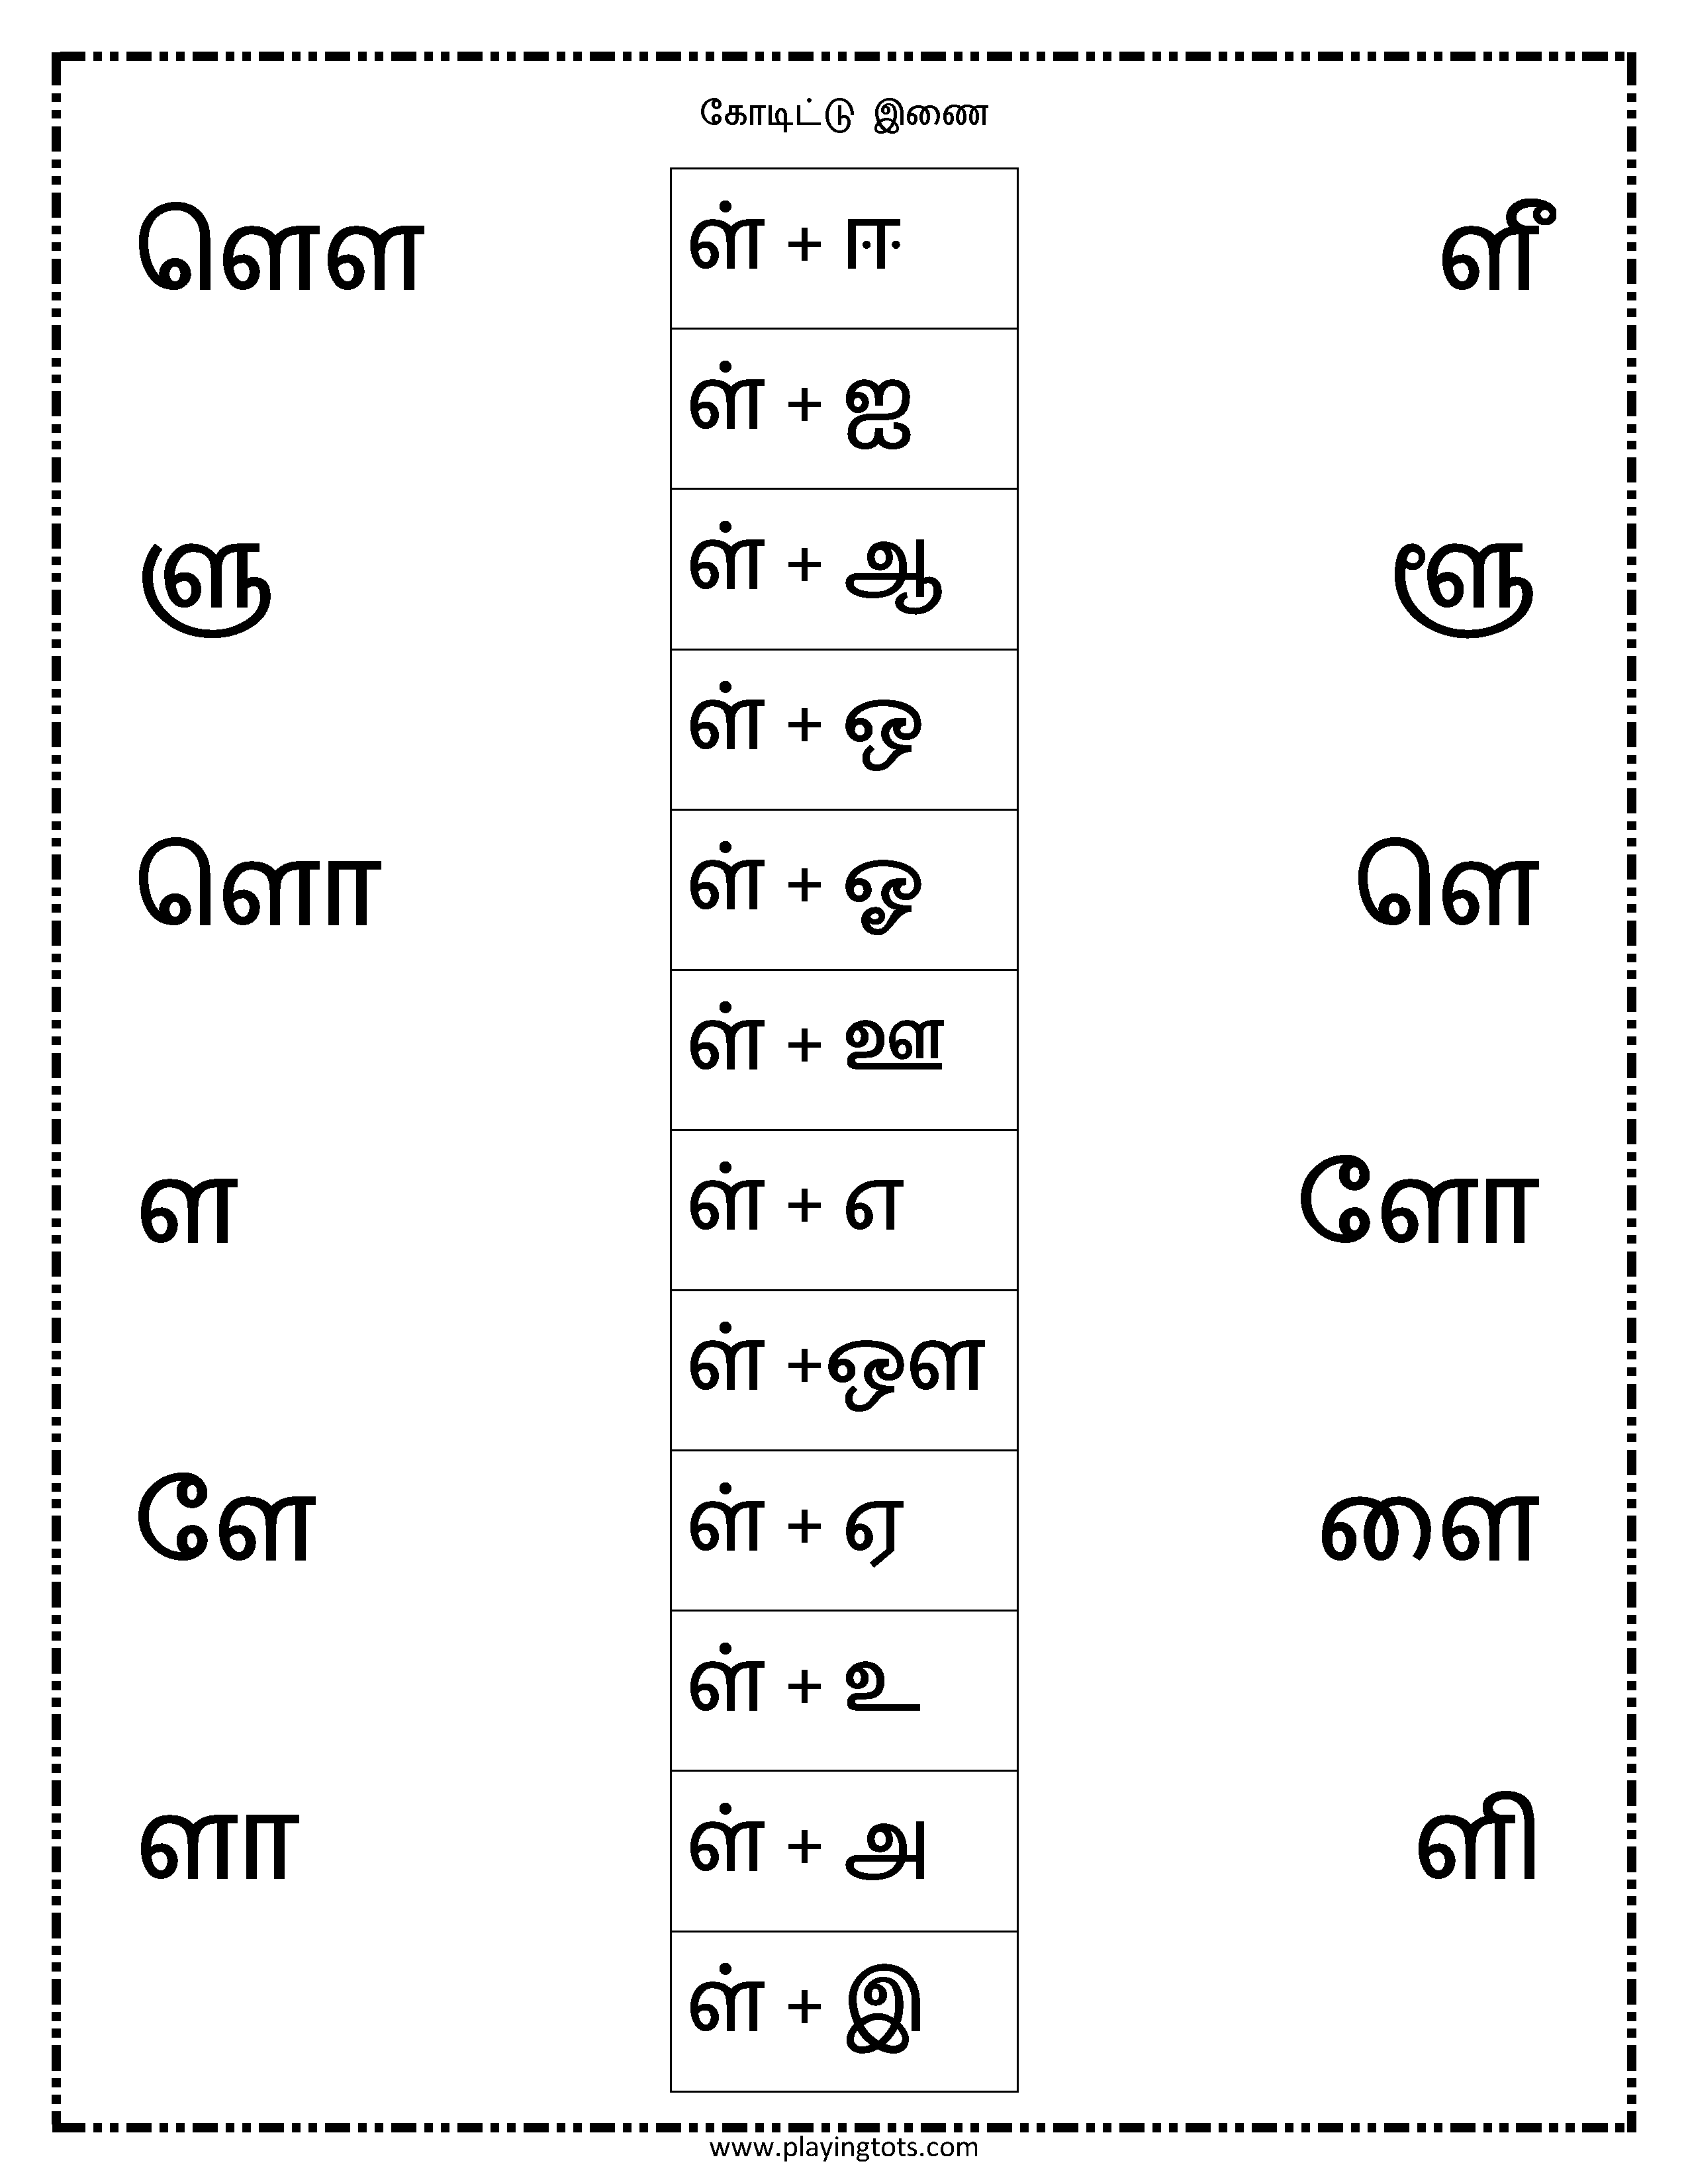 Pin By Eswarirajbarath On Tamil Worksheets G1